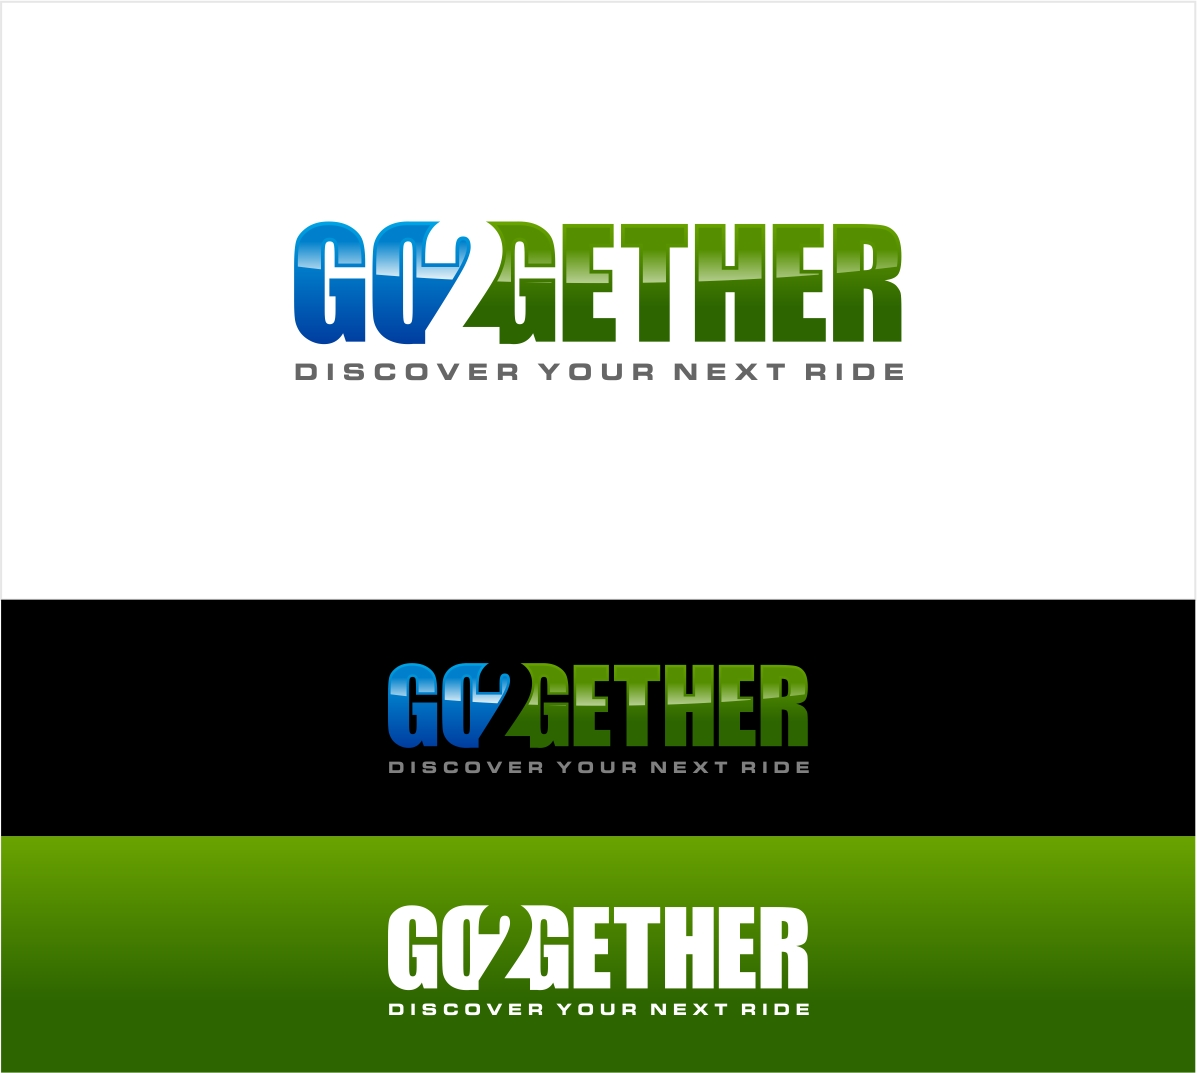 Logo Design by haidu - Entry No. 15 in the Logo Design Contest Captivating Logo Design for GO2GETHER.